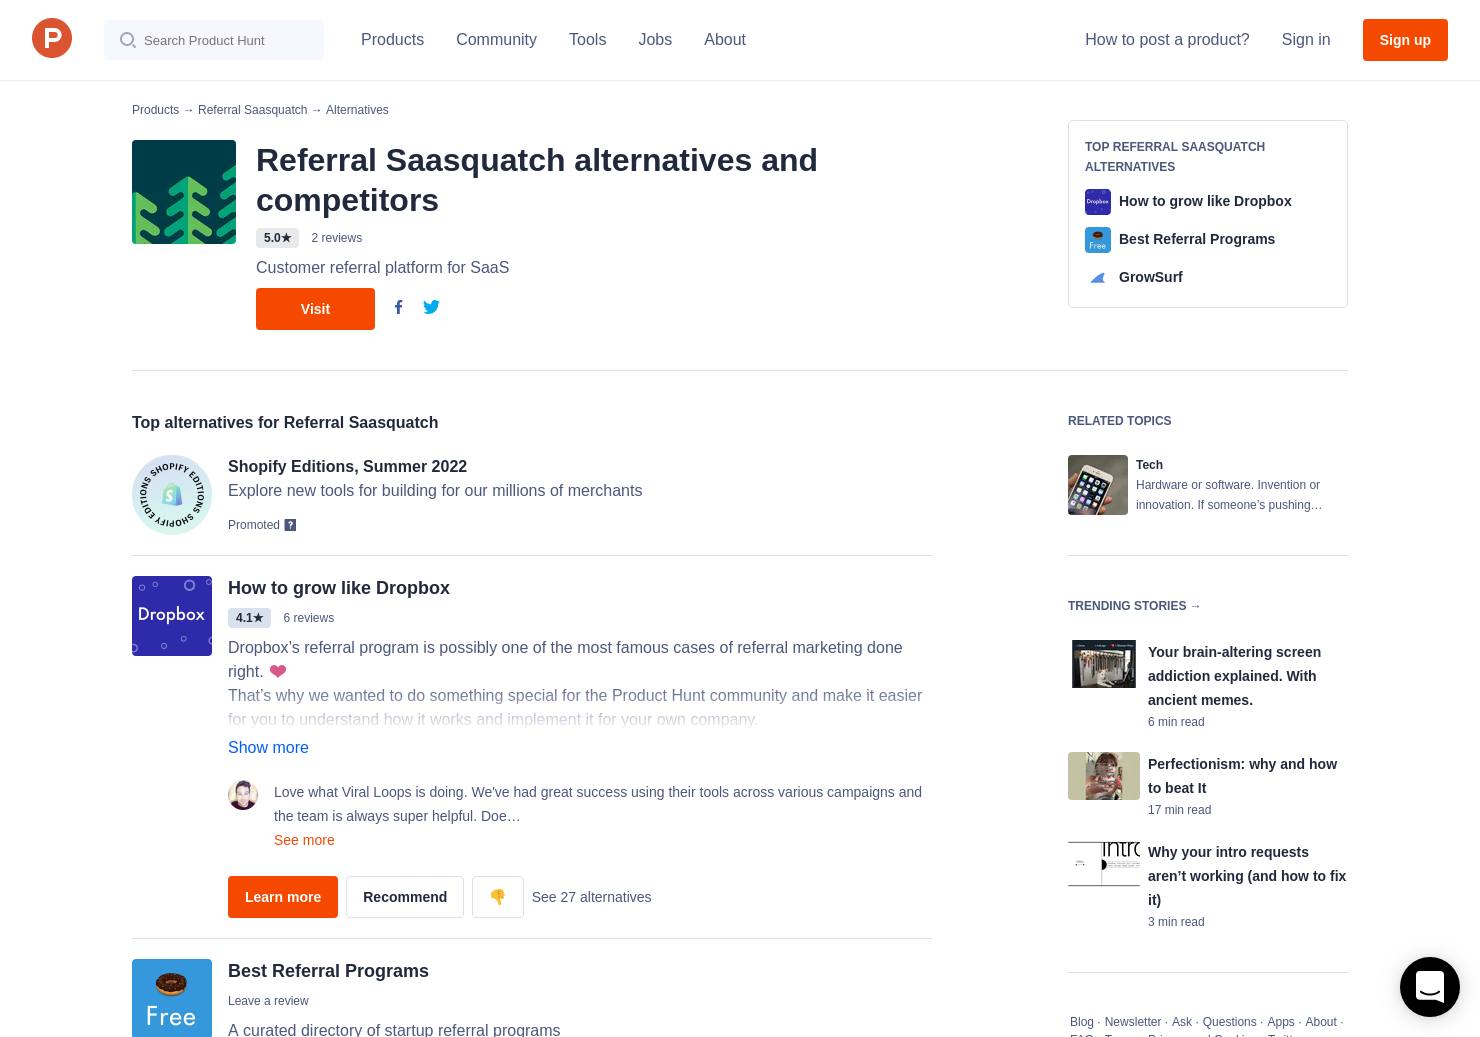 8 Alternatives to Referral Saasquatch | Product Hunt